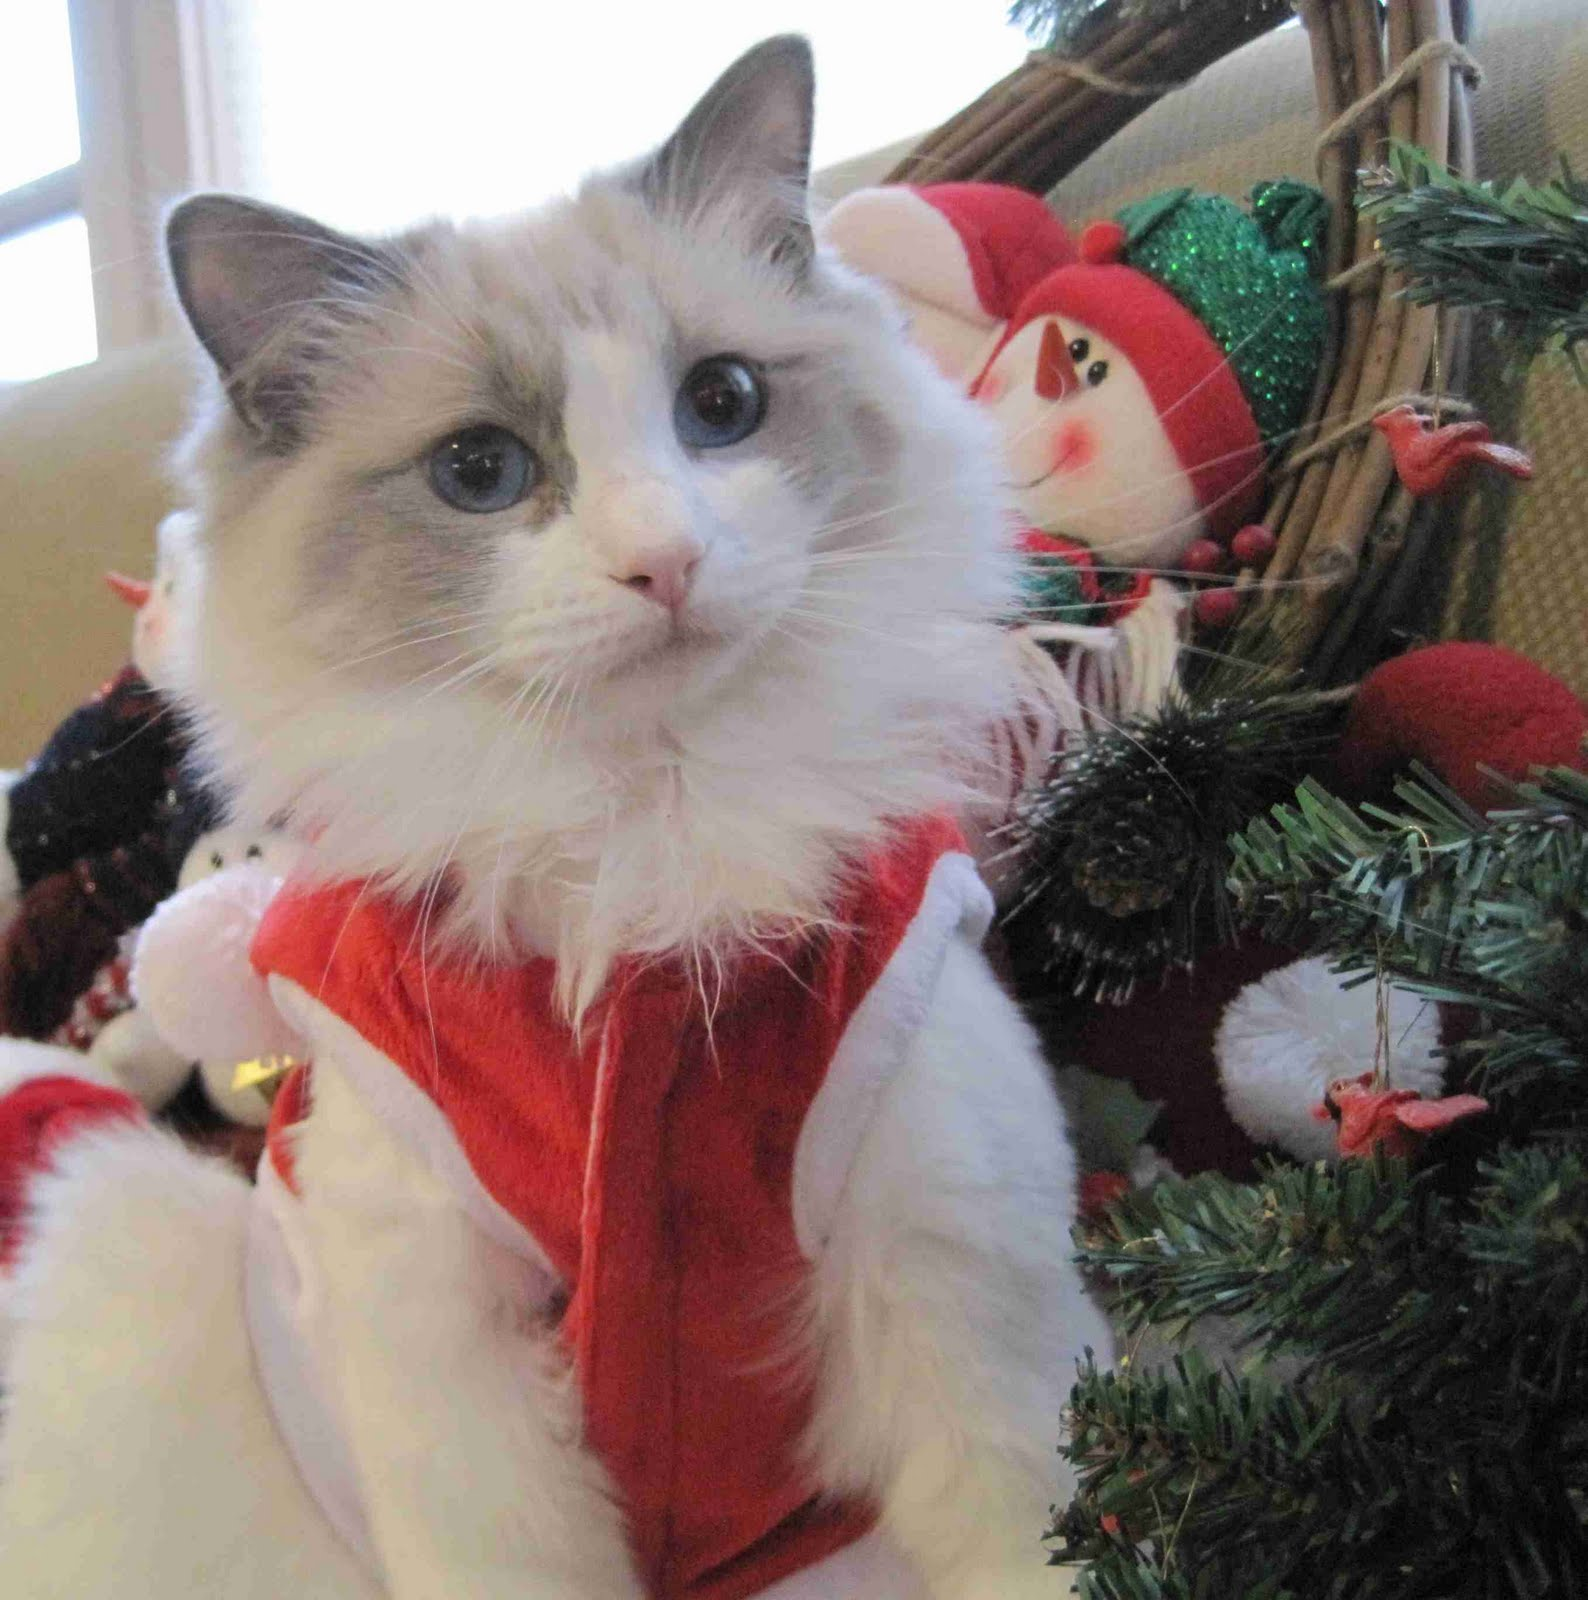 imgchili cat CLOON'S COUSIN CLOONSKI OGORKI CELEBRATES UKRAINIAN CHRISTMAS WITH MISS  TROVSKY OF THE PINK NOSE SOCIETY